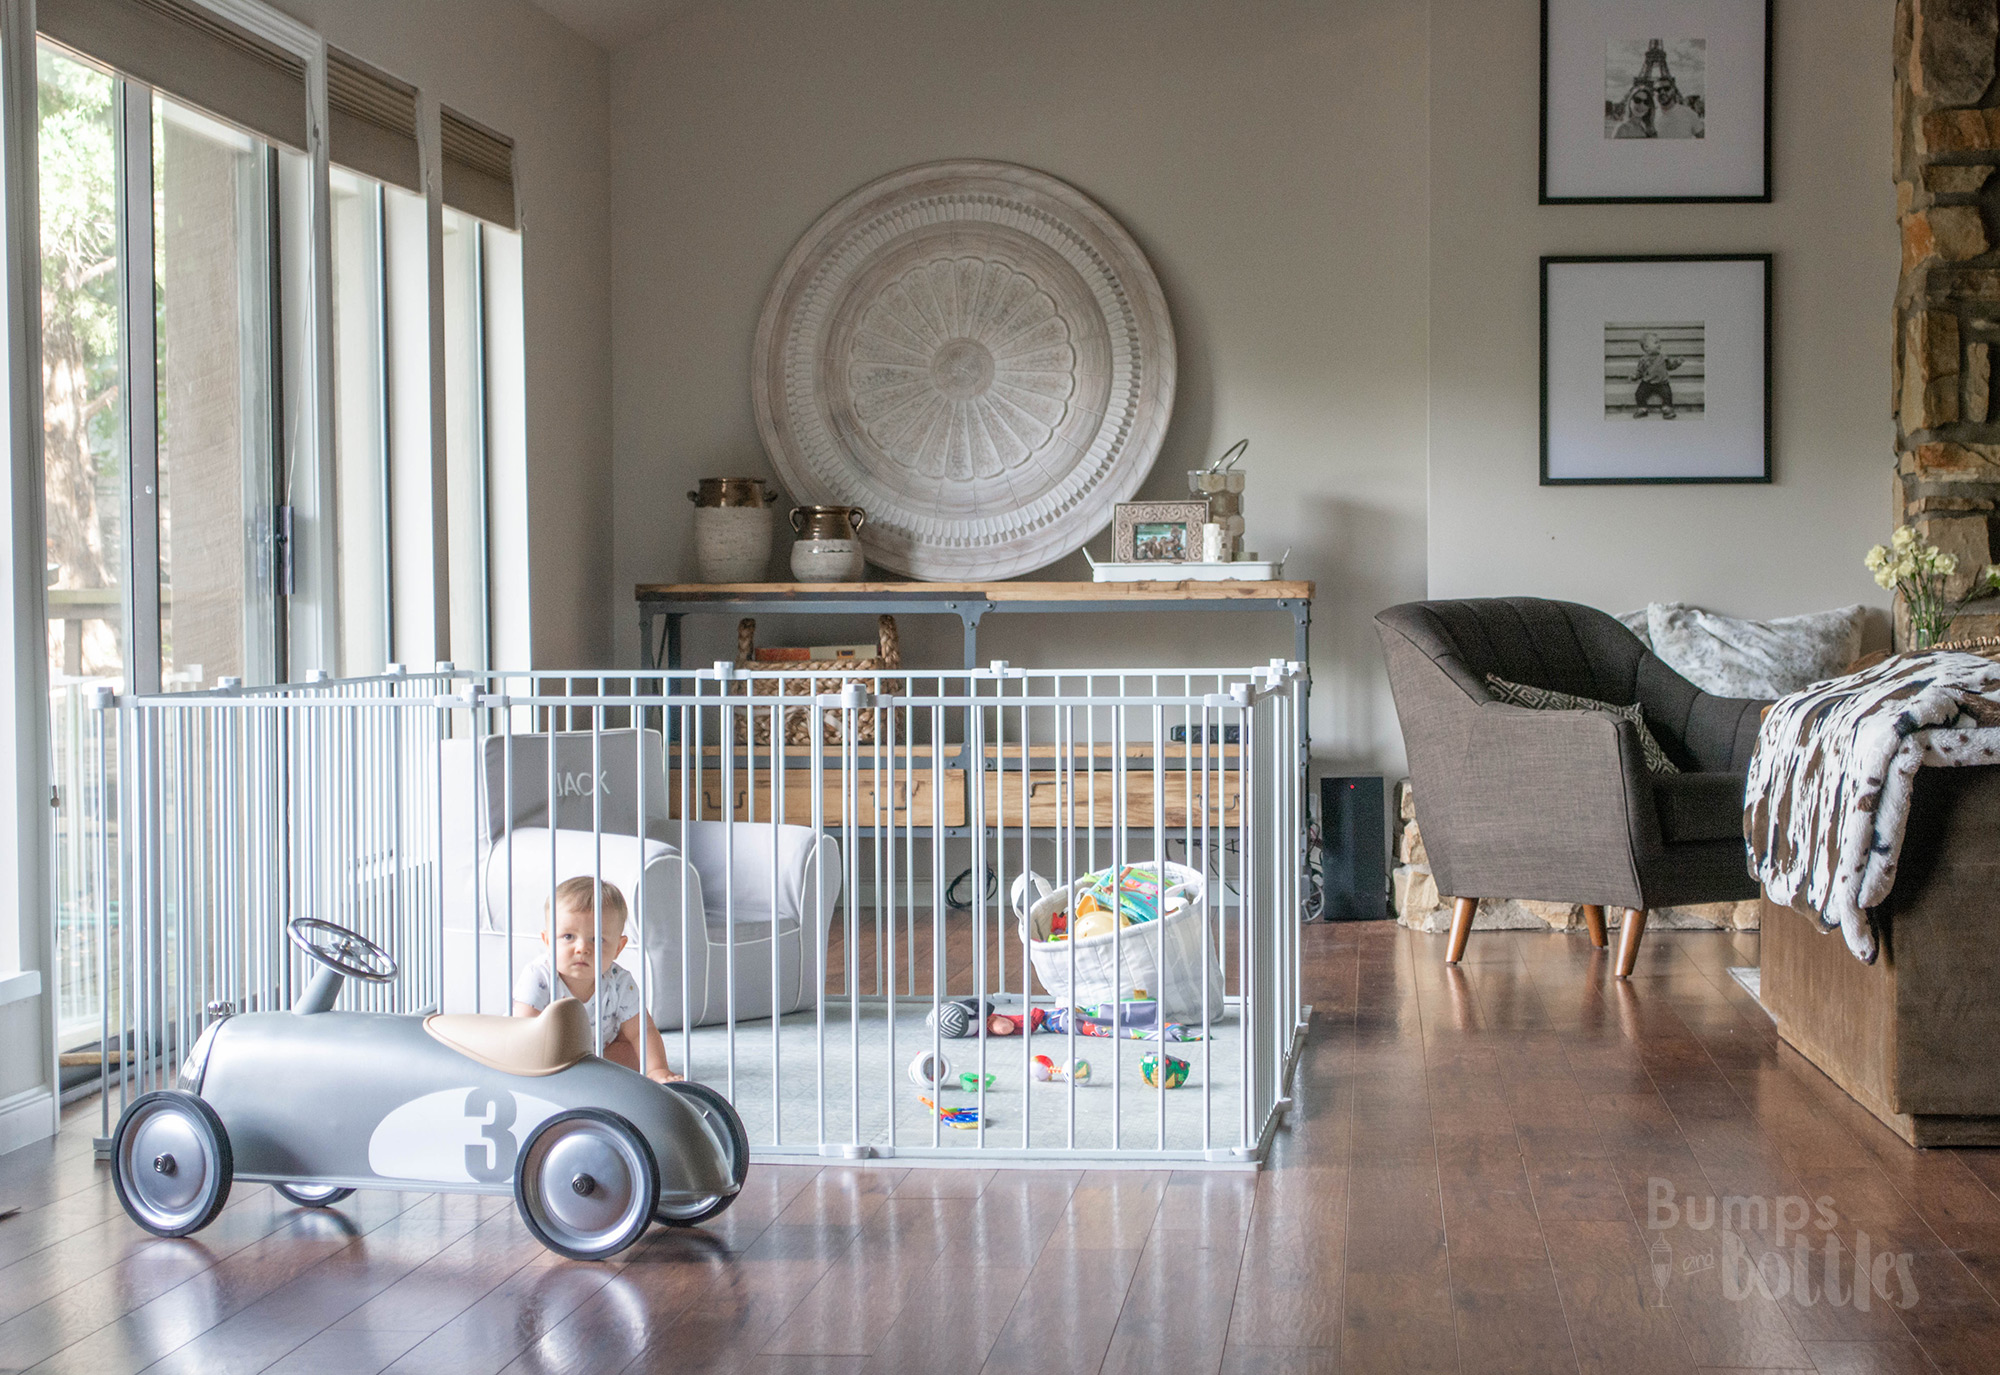 Tips For Creating An Attractive Baby Friendly Living Room Bumps And Bottles